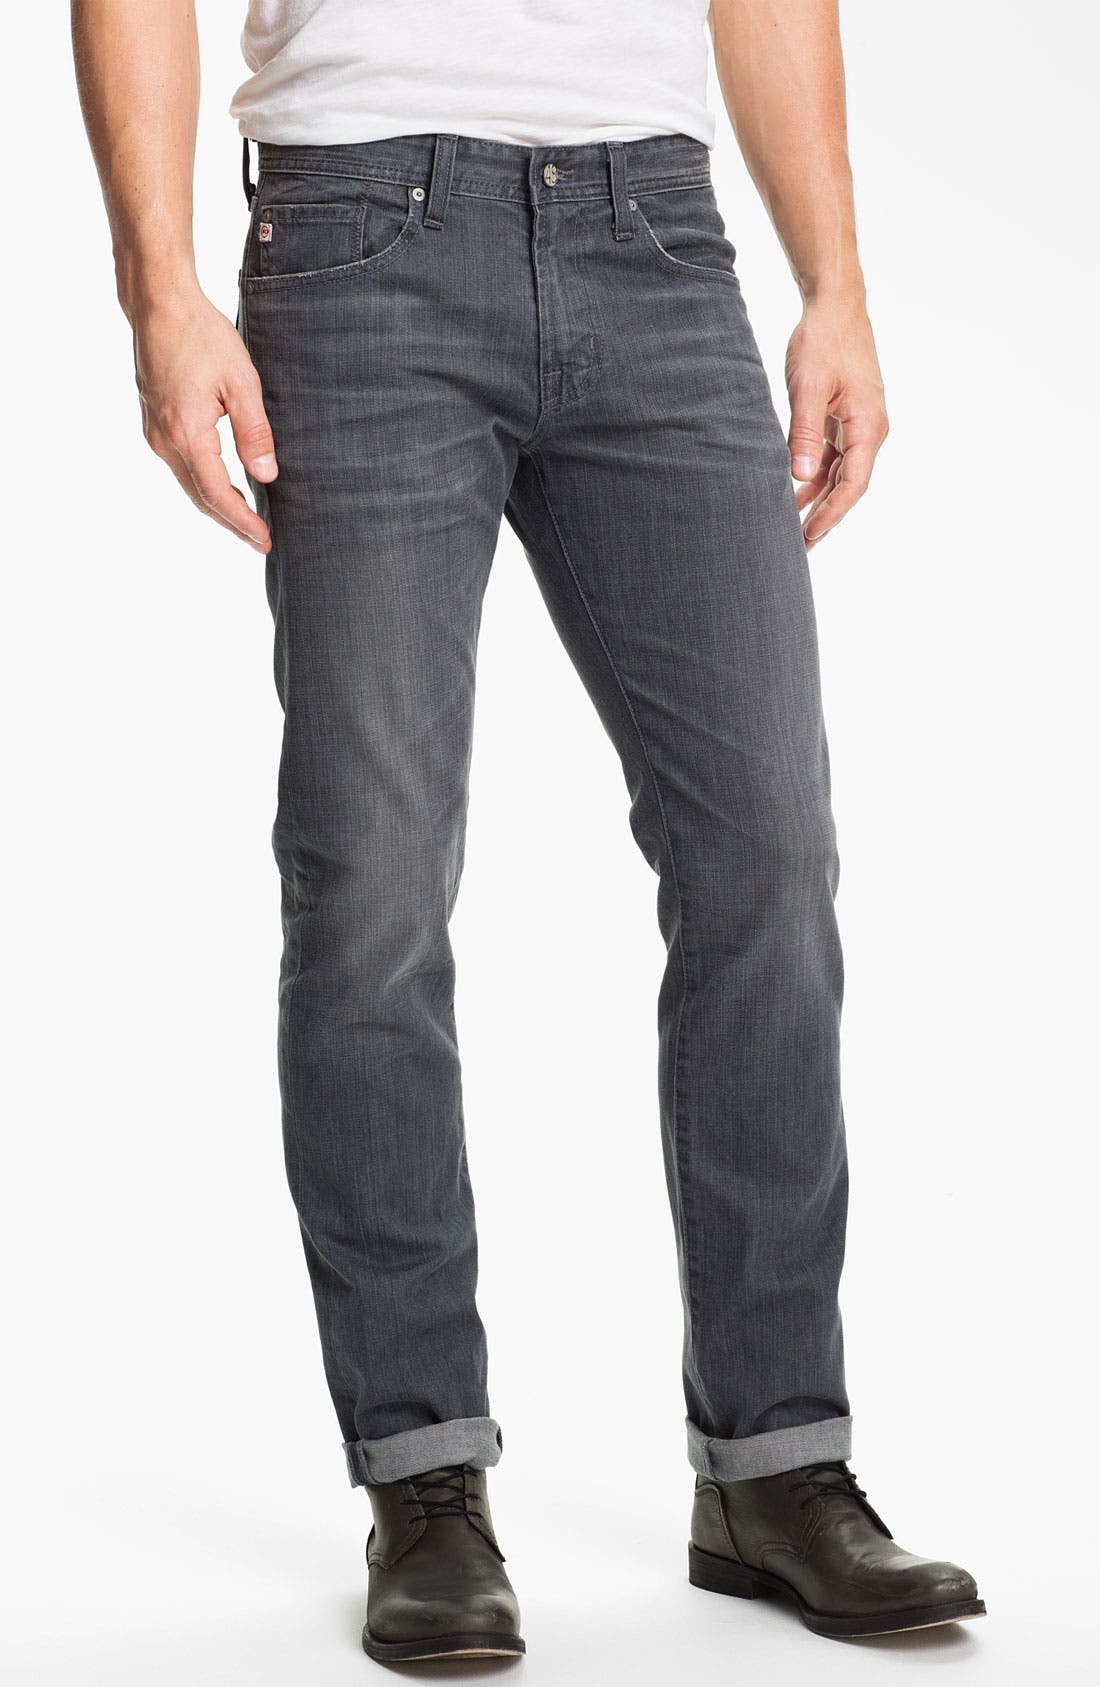 Alternate Image 1 Selected - AG Jeans 'Matchbox' Slim Fit Jeans (7 Year Grey)